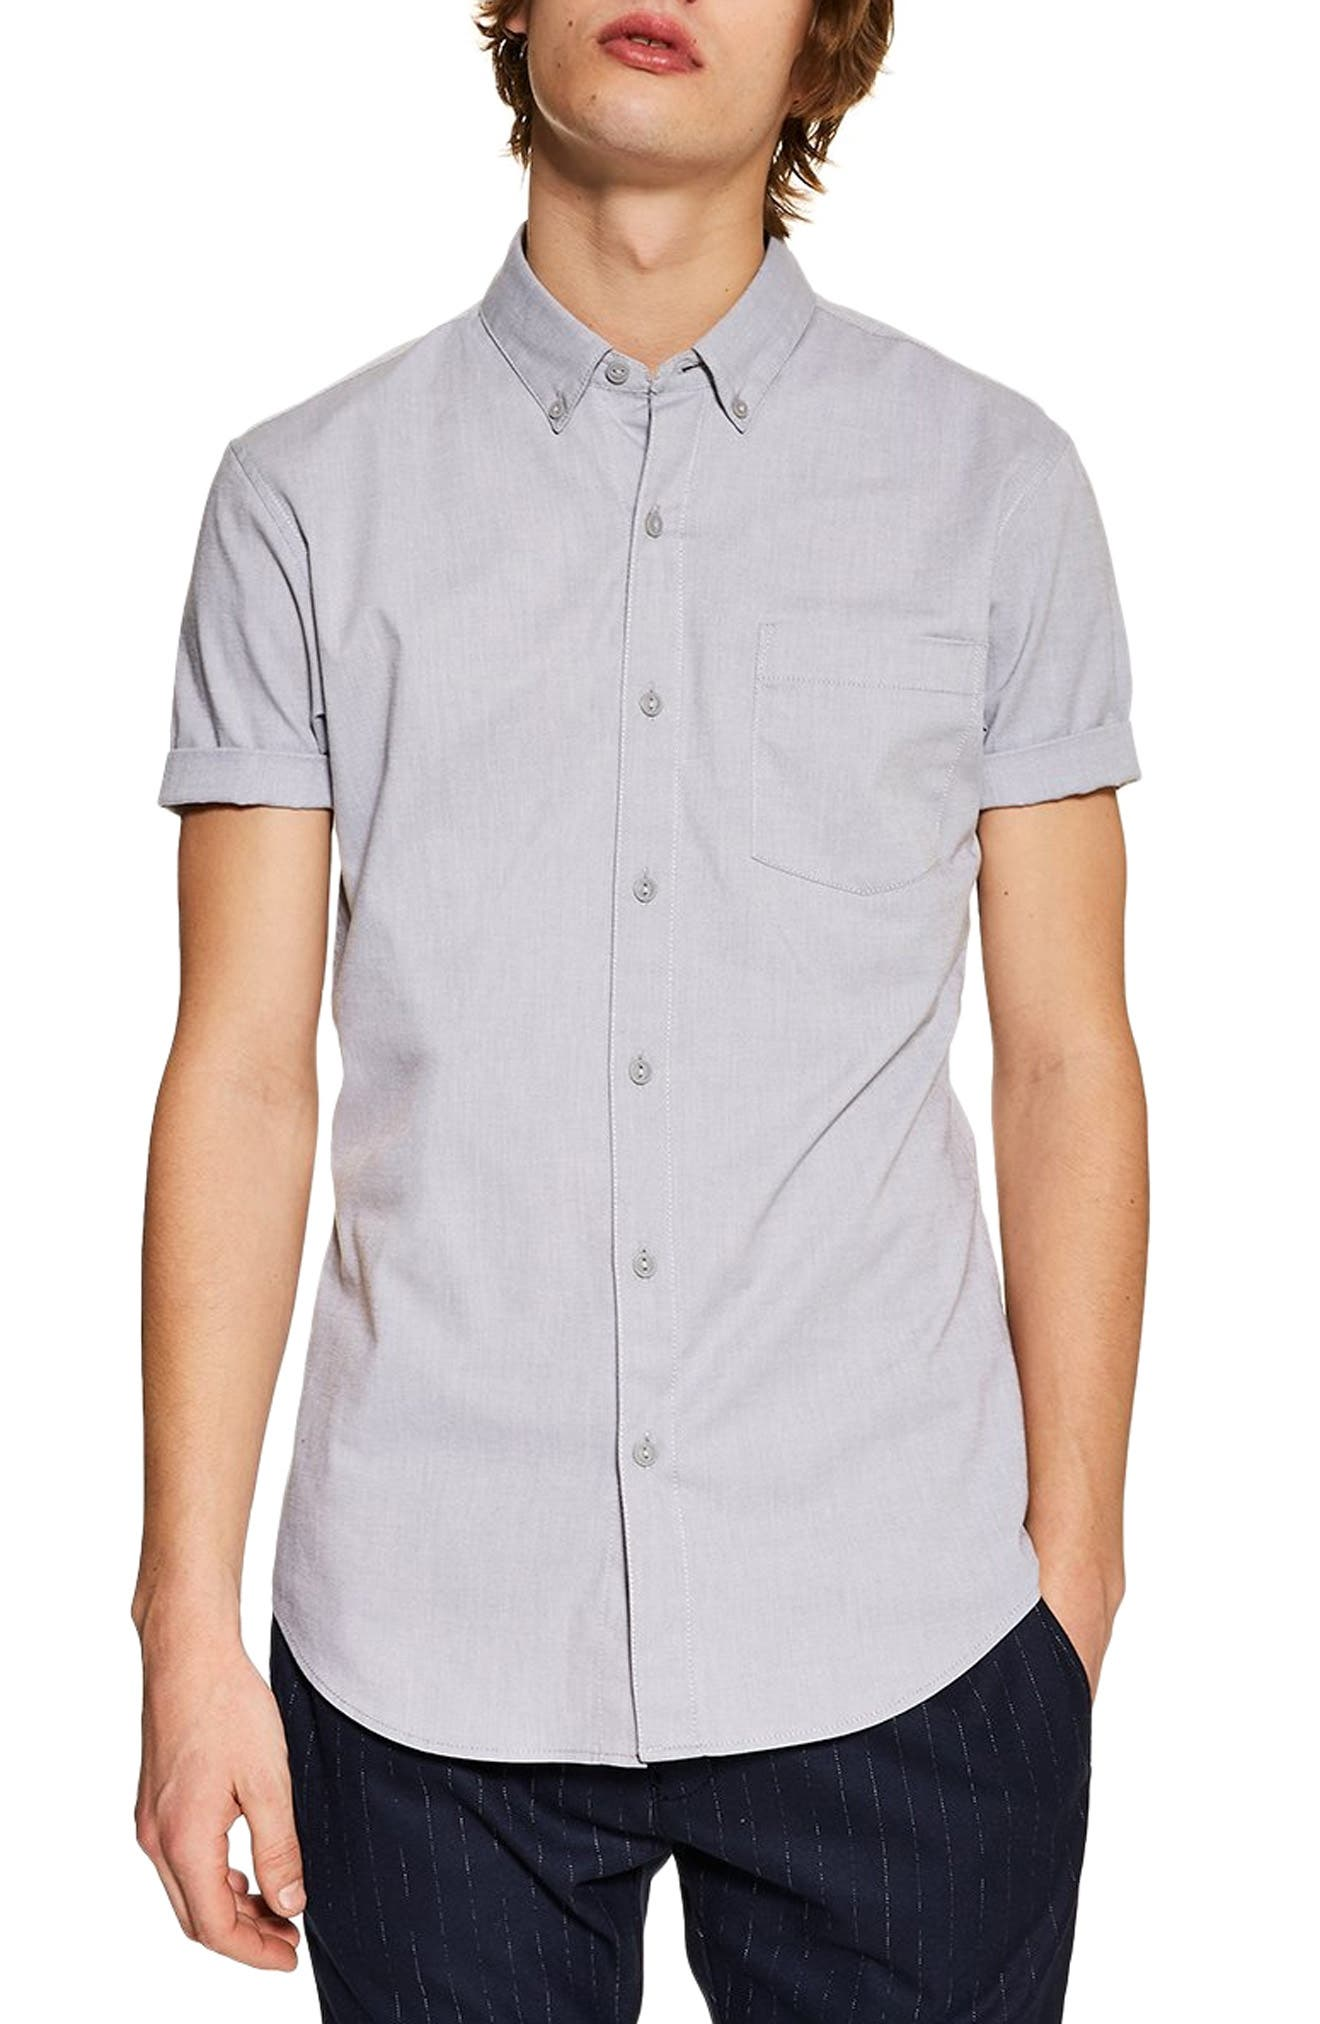 TOPMAN Muscle Fit Oxford Shirt, Main, color, GREY